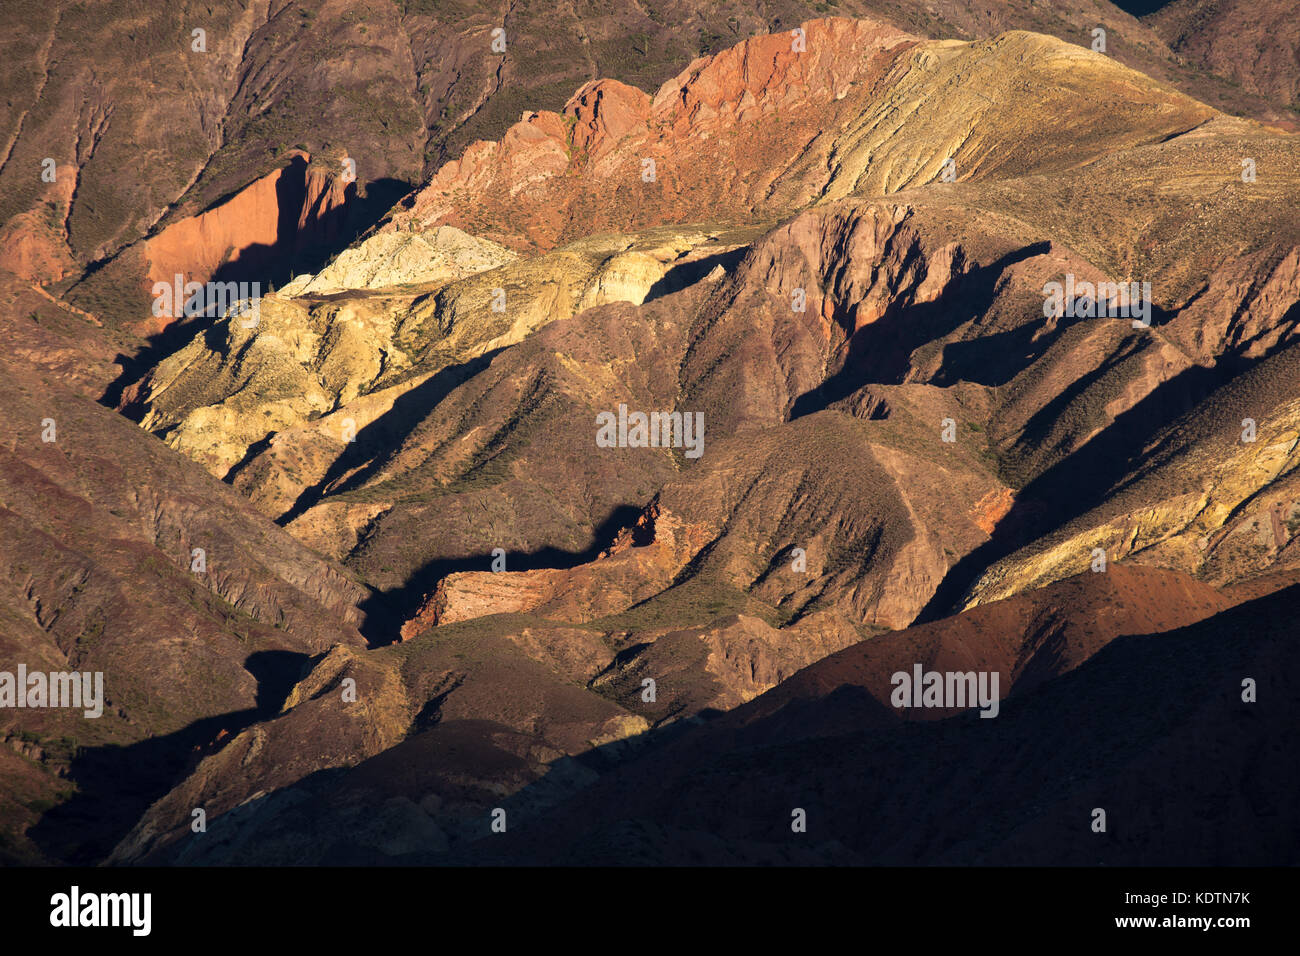 Colours in the mountains of the Quebrada de Humahuaca nr Tilcara, Jujuy Province, Argentina - Stock Image